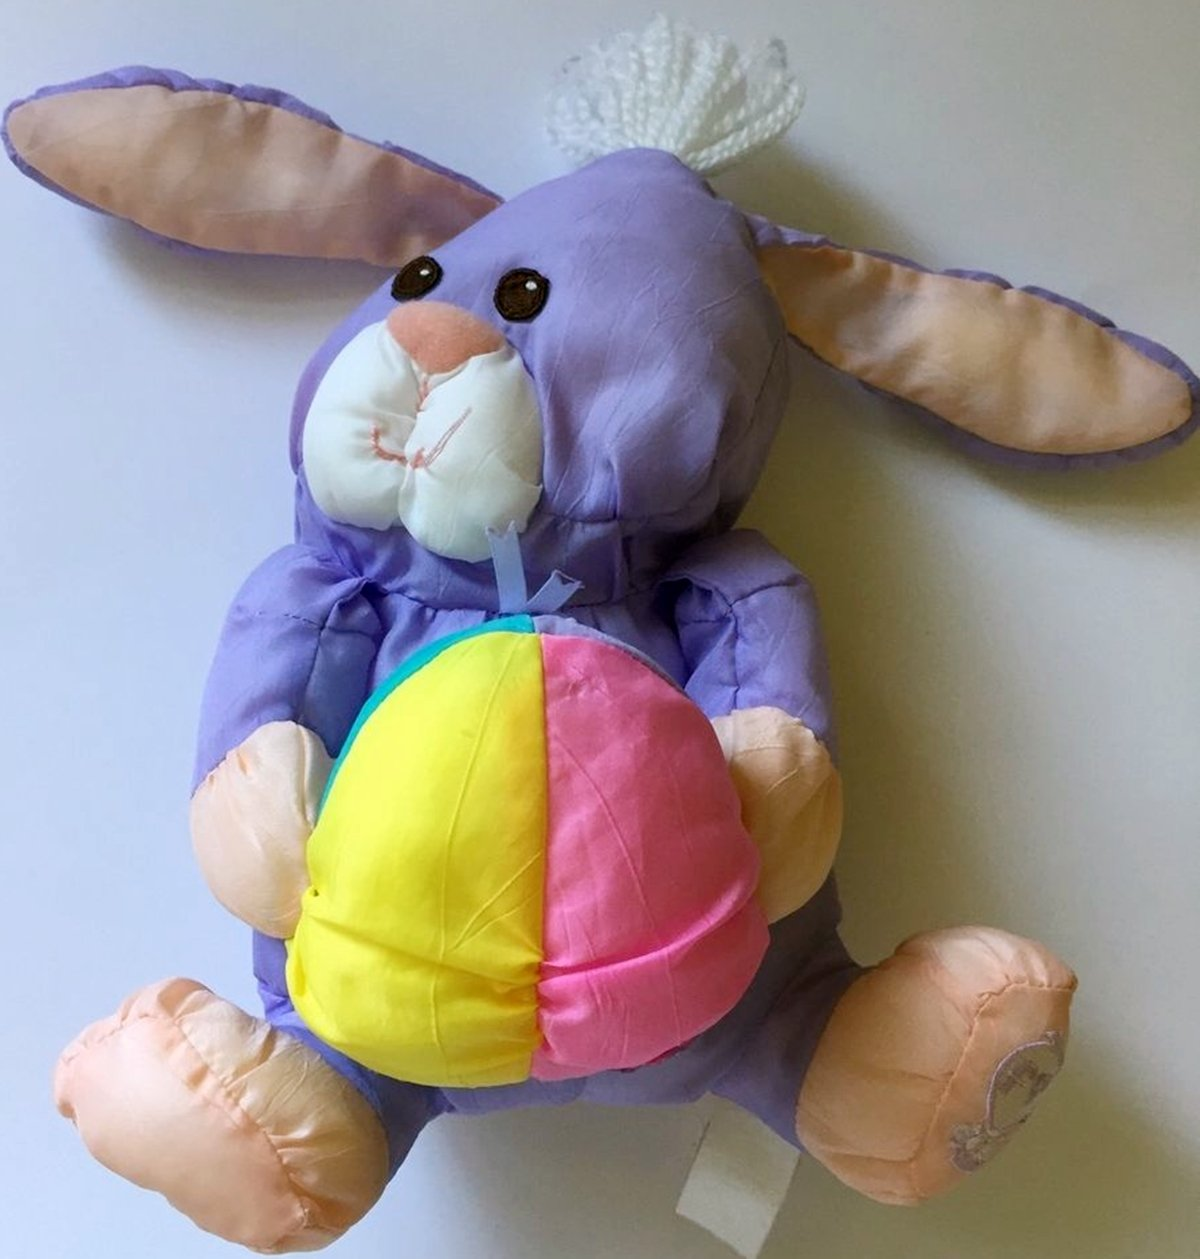 12 25 QUIZ: How Many Of These 15 Cuddly Toys Did YOU Own As A Child?